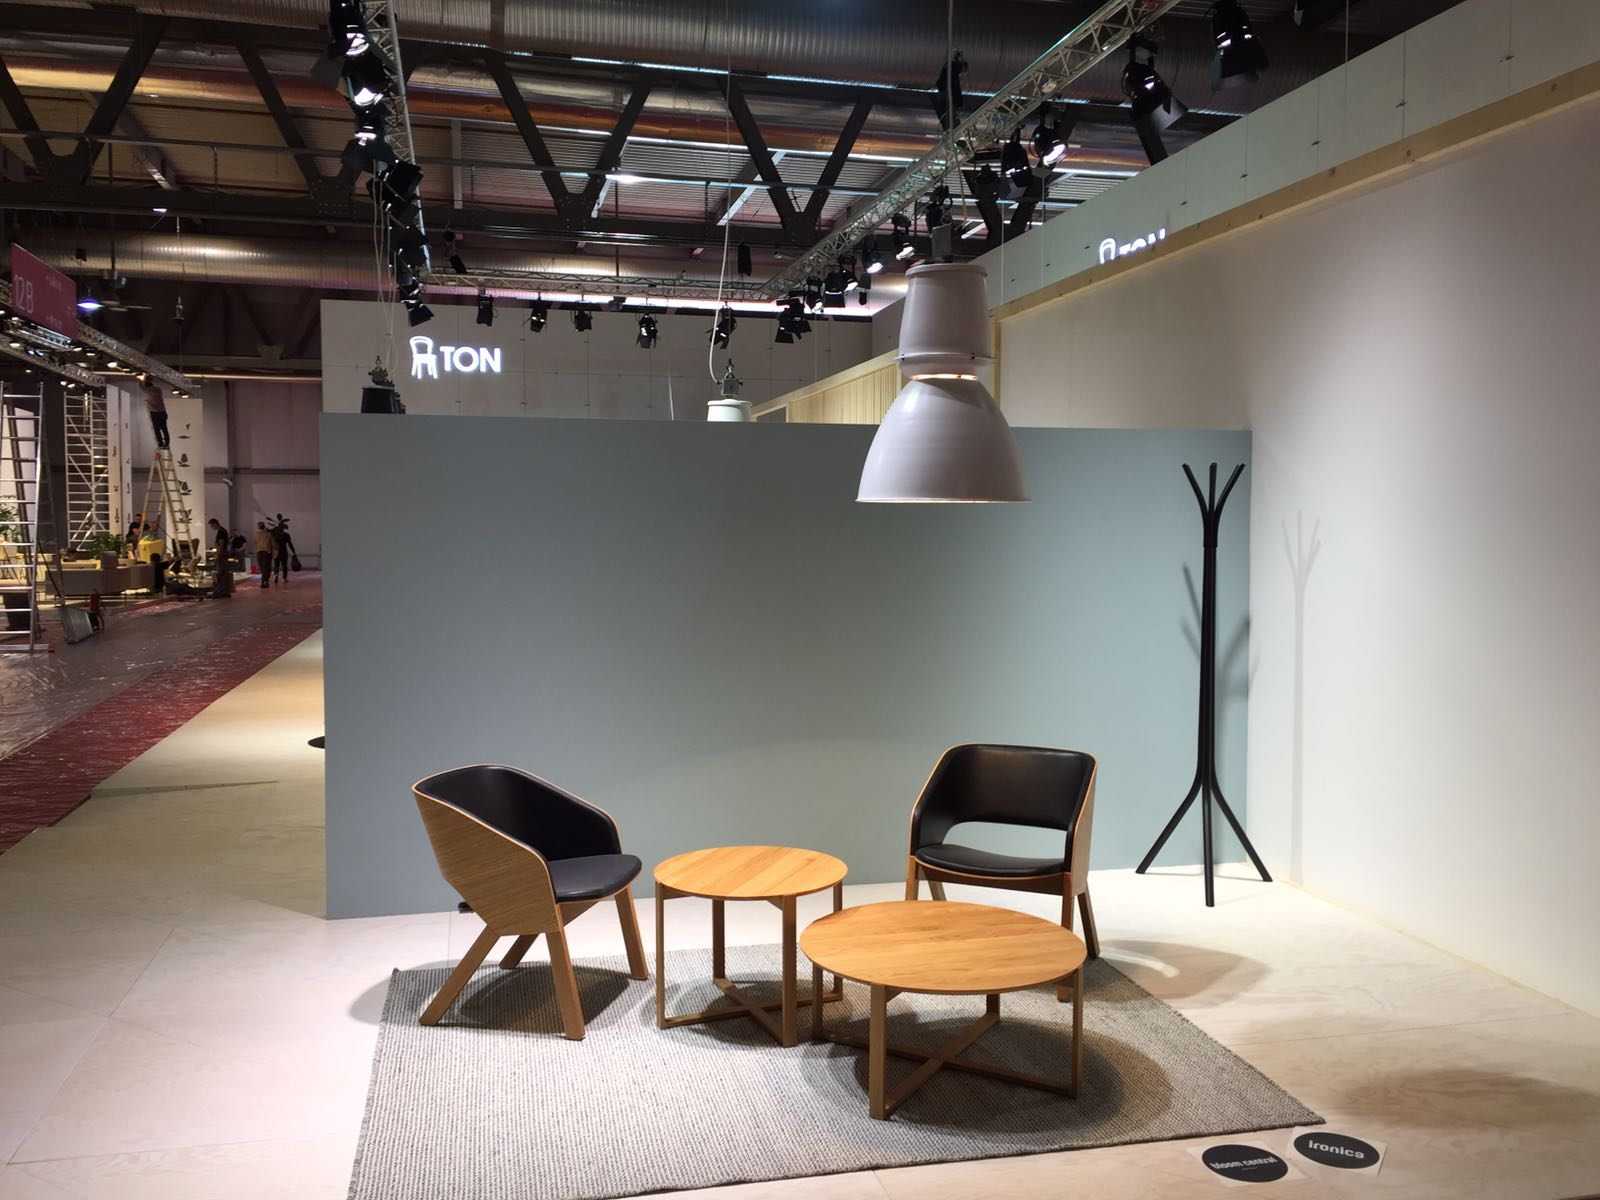 5 Color Trends Spotted at Salone del Mobile 2017 salone del mobile 2017 5 Color Trends Spotted at Salone del Mobile 2017 5 Color Trends Spotted at Salone del Mobile 2017 10